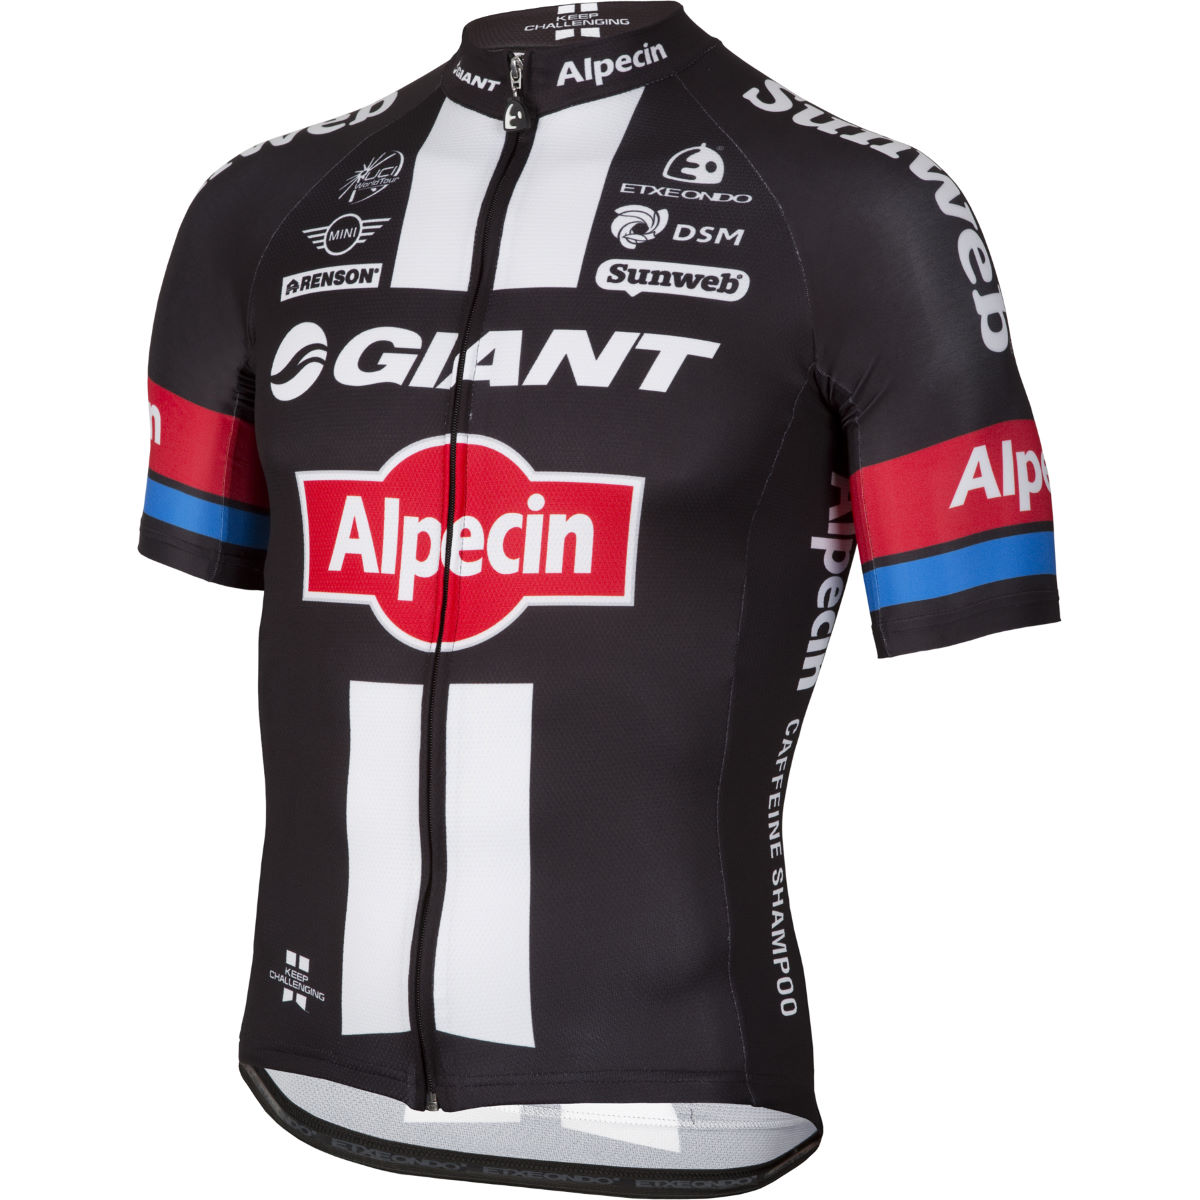 Maillot Etxeondo Giant Alpecin Replica - M Black/White/Red Maillots des équipes pro